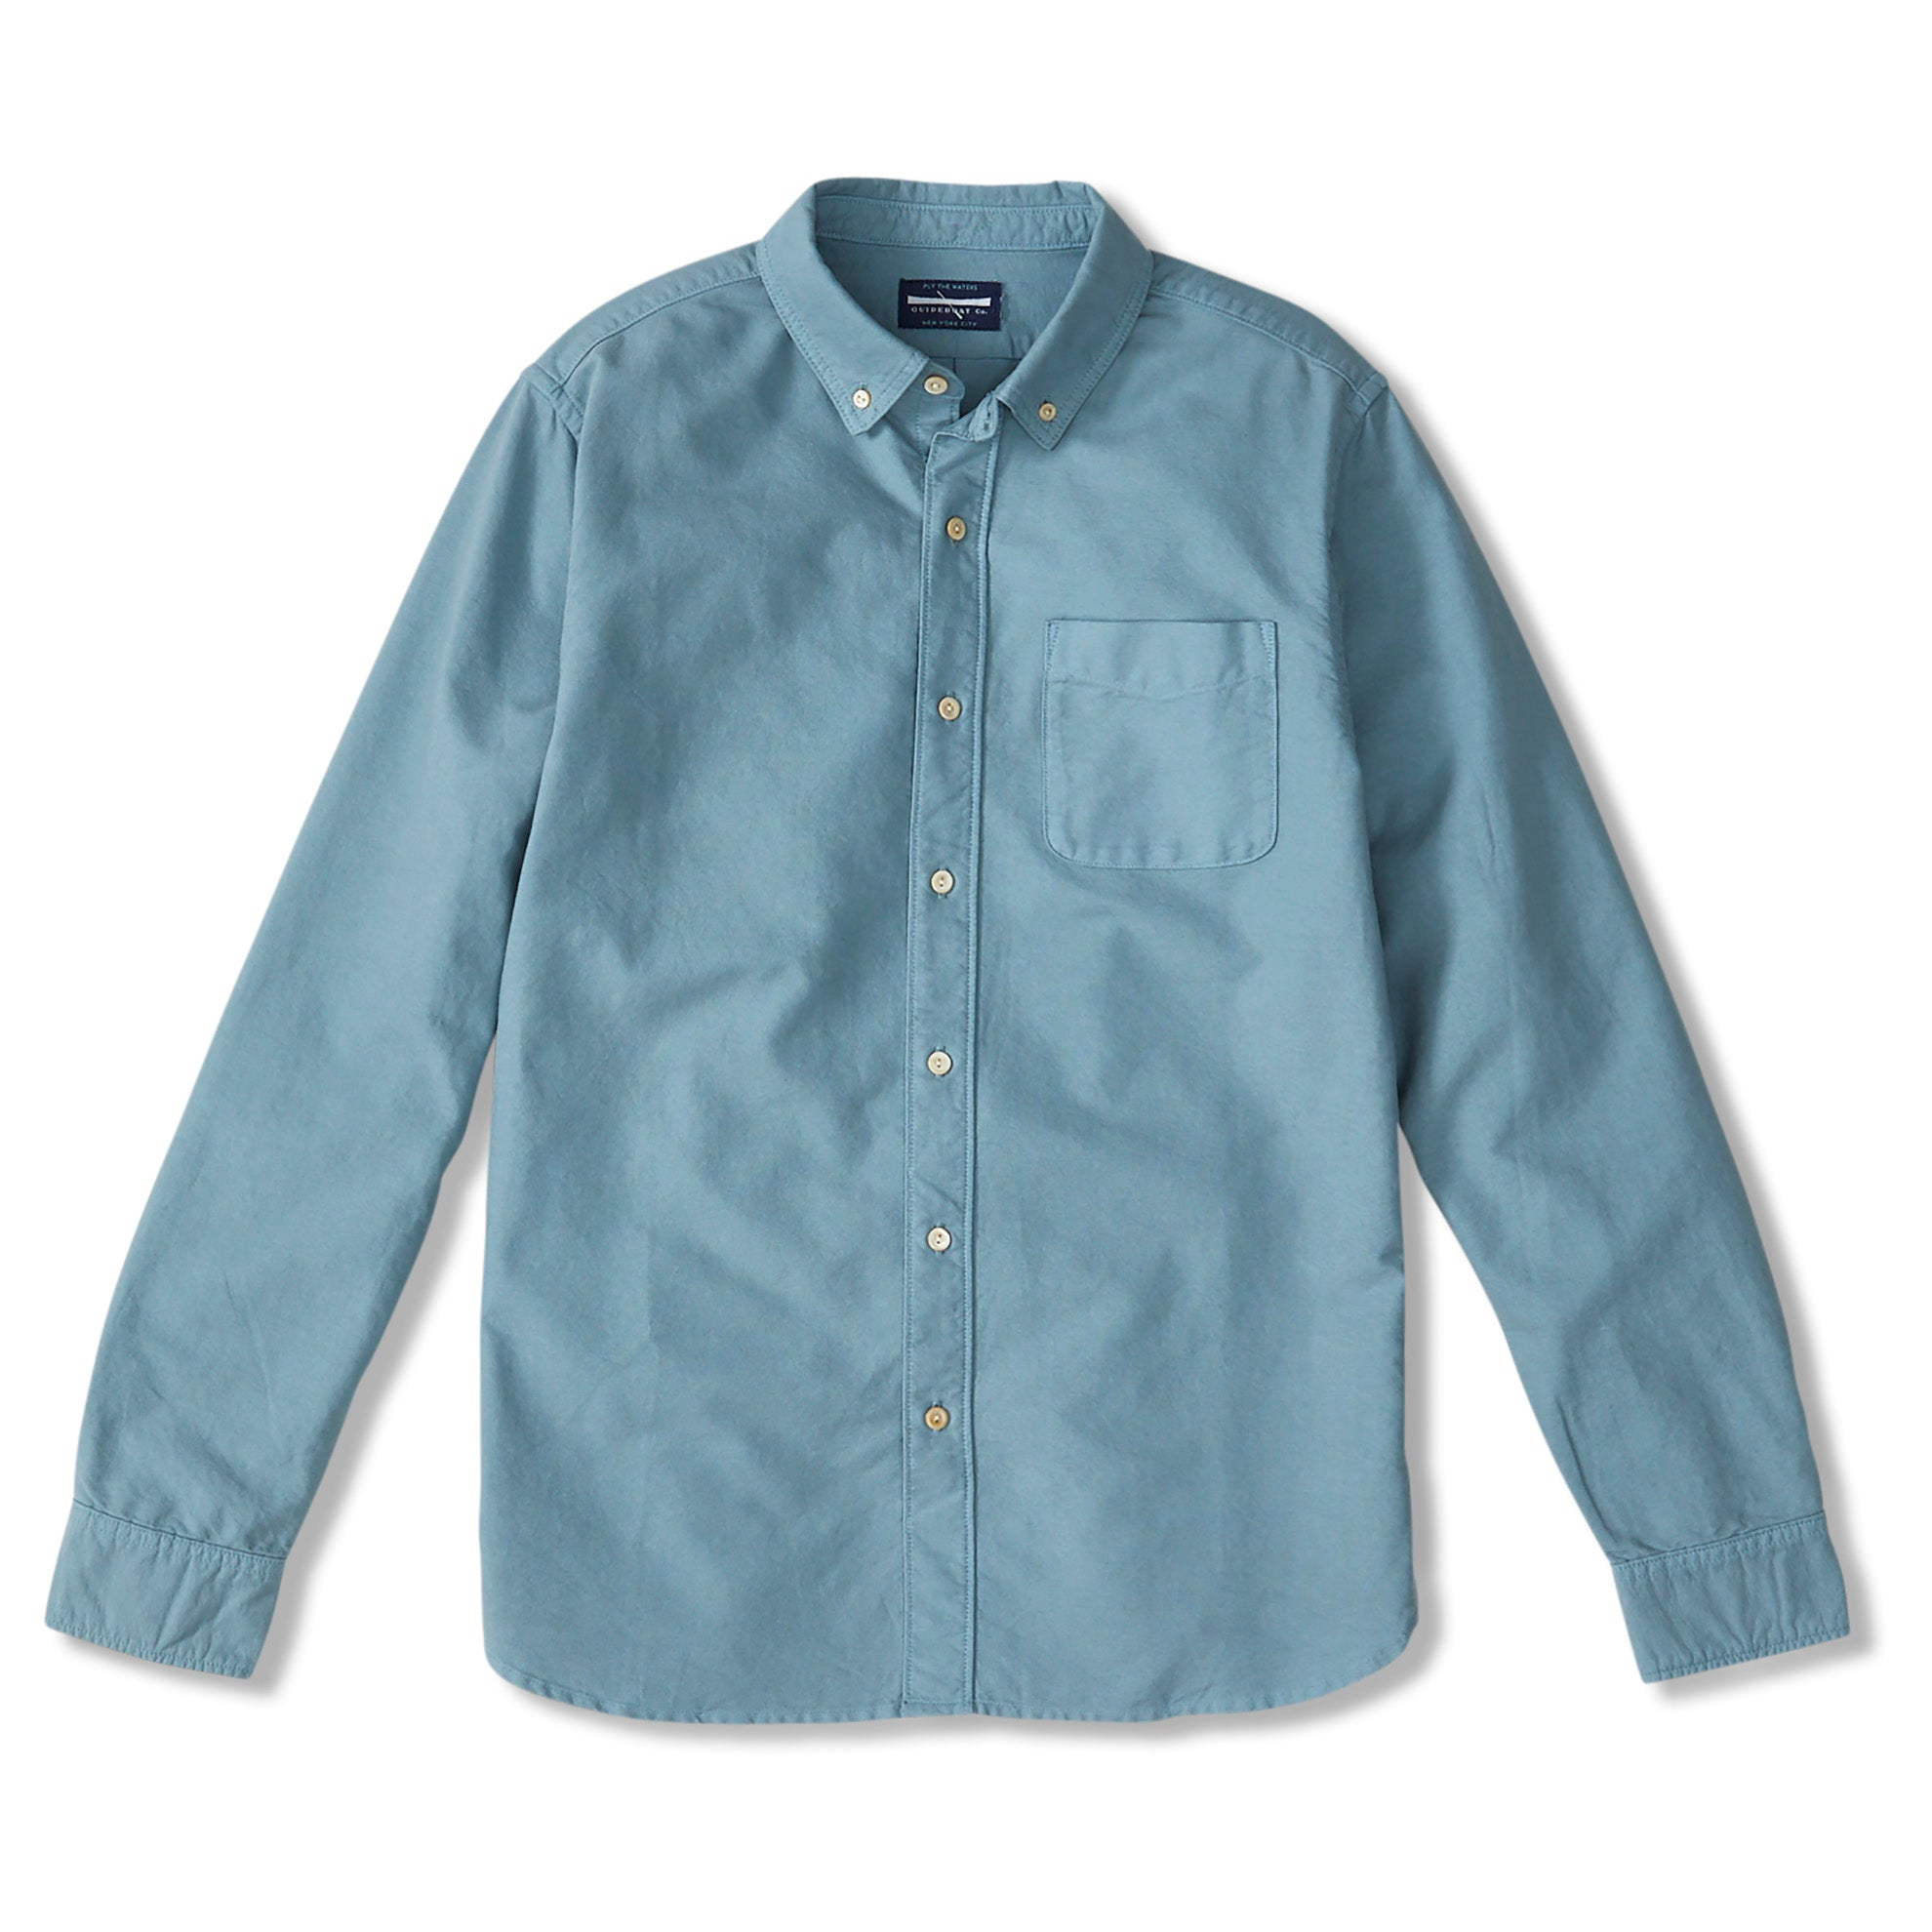 Garment Dye Oxford Shirting